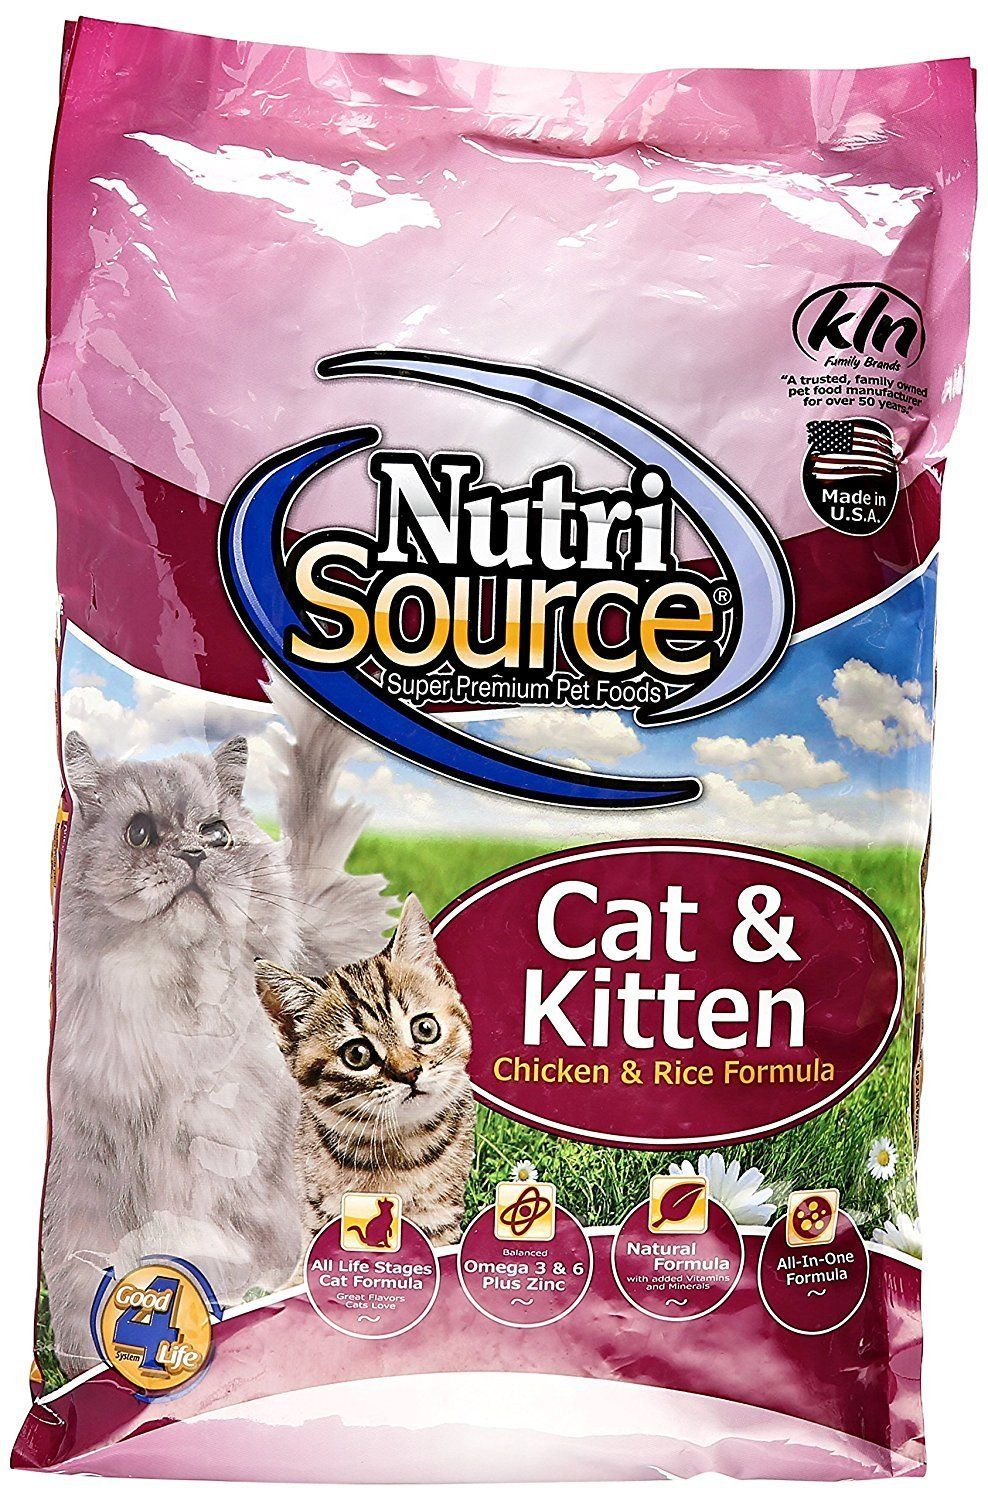 Chicken And Rice Cat Kitten Food Size 6 6 Lb Bag You Can Get More Details Here Cat Food Kitten Food Dry Cat Food Cat Food Allergy